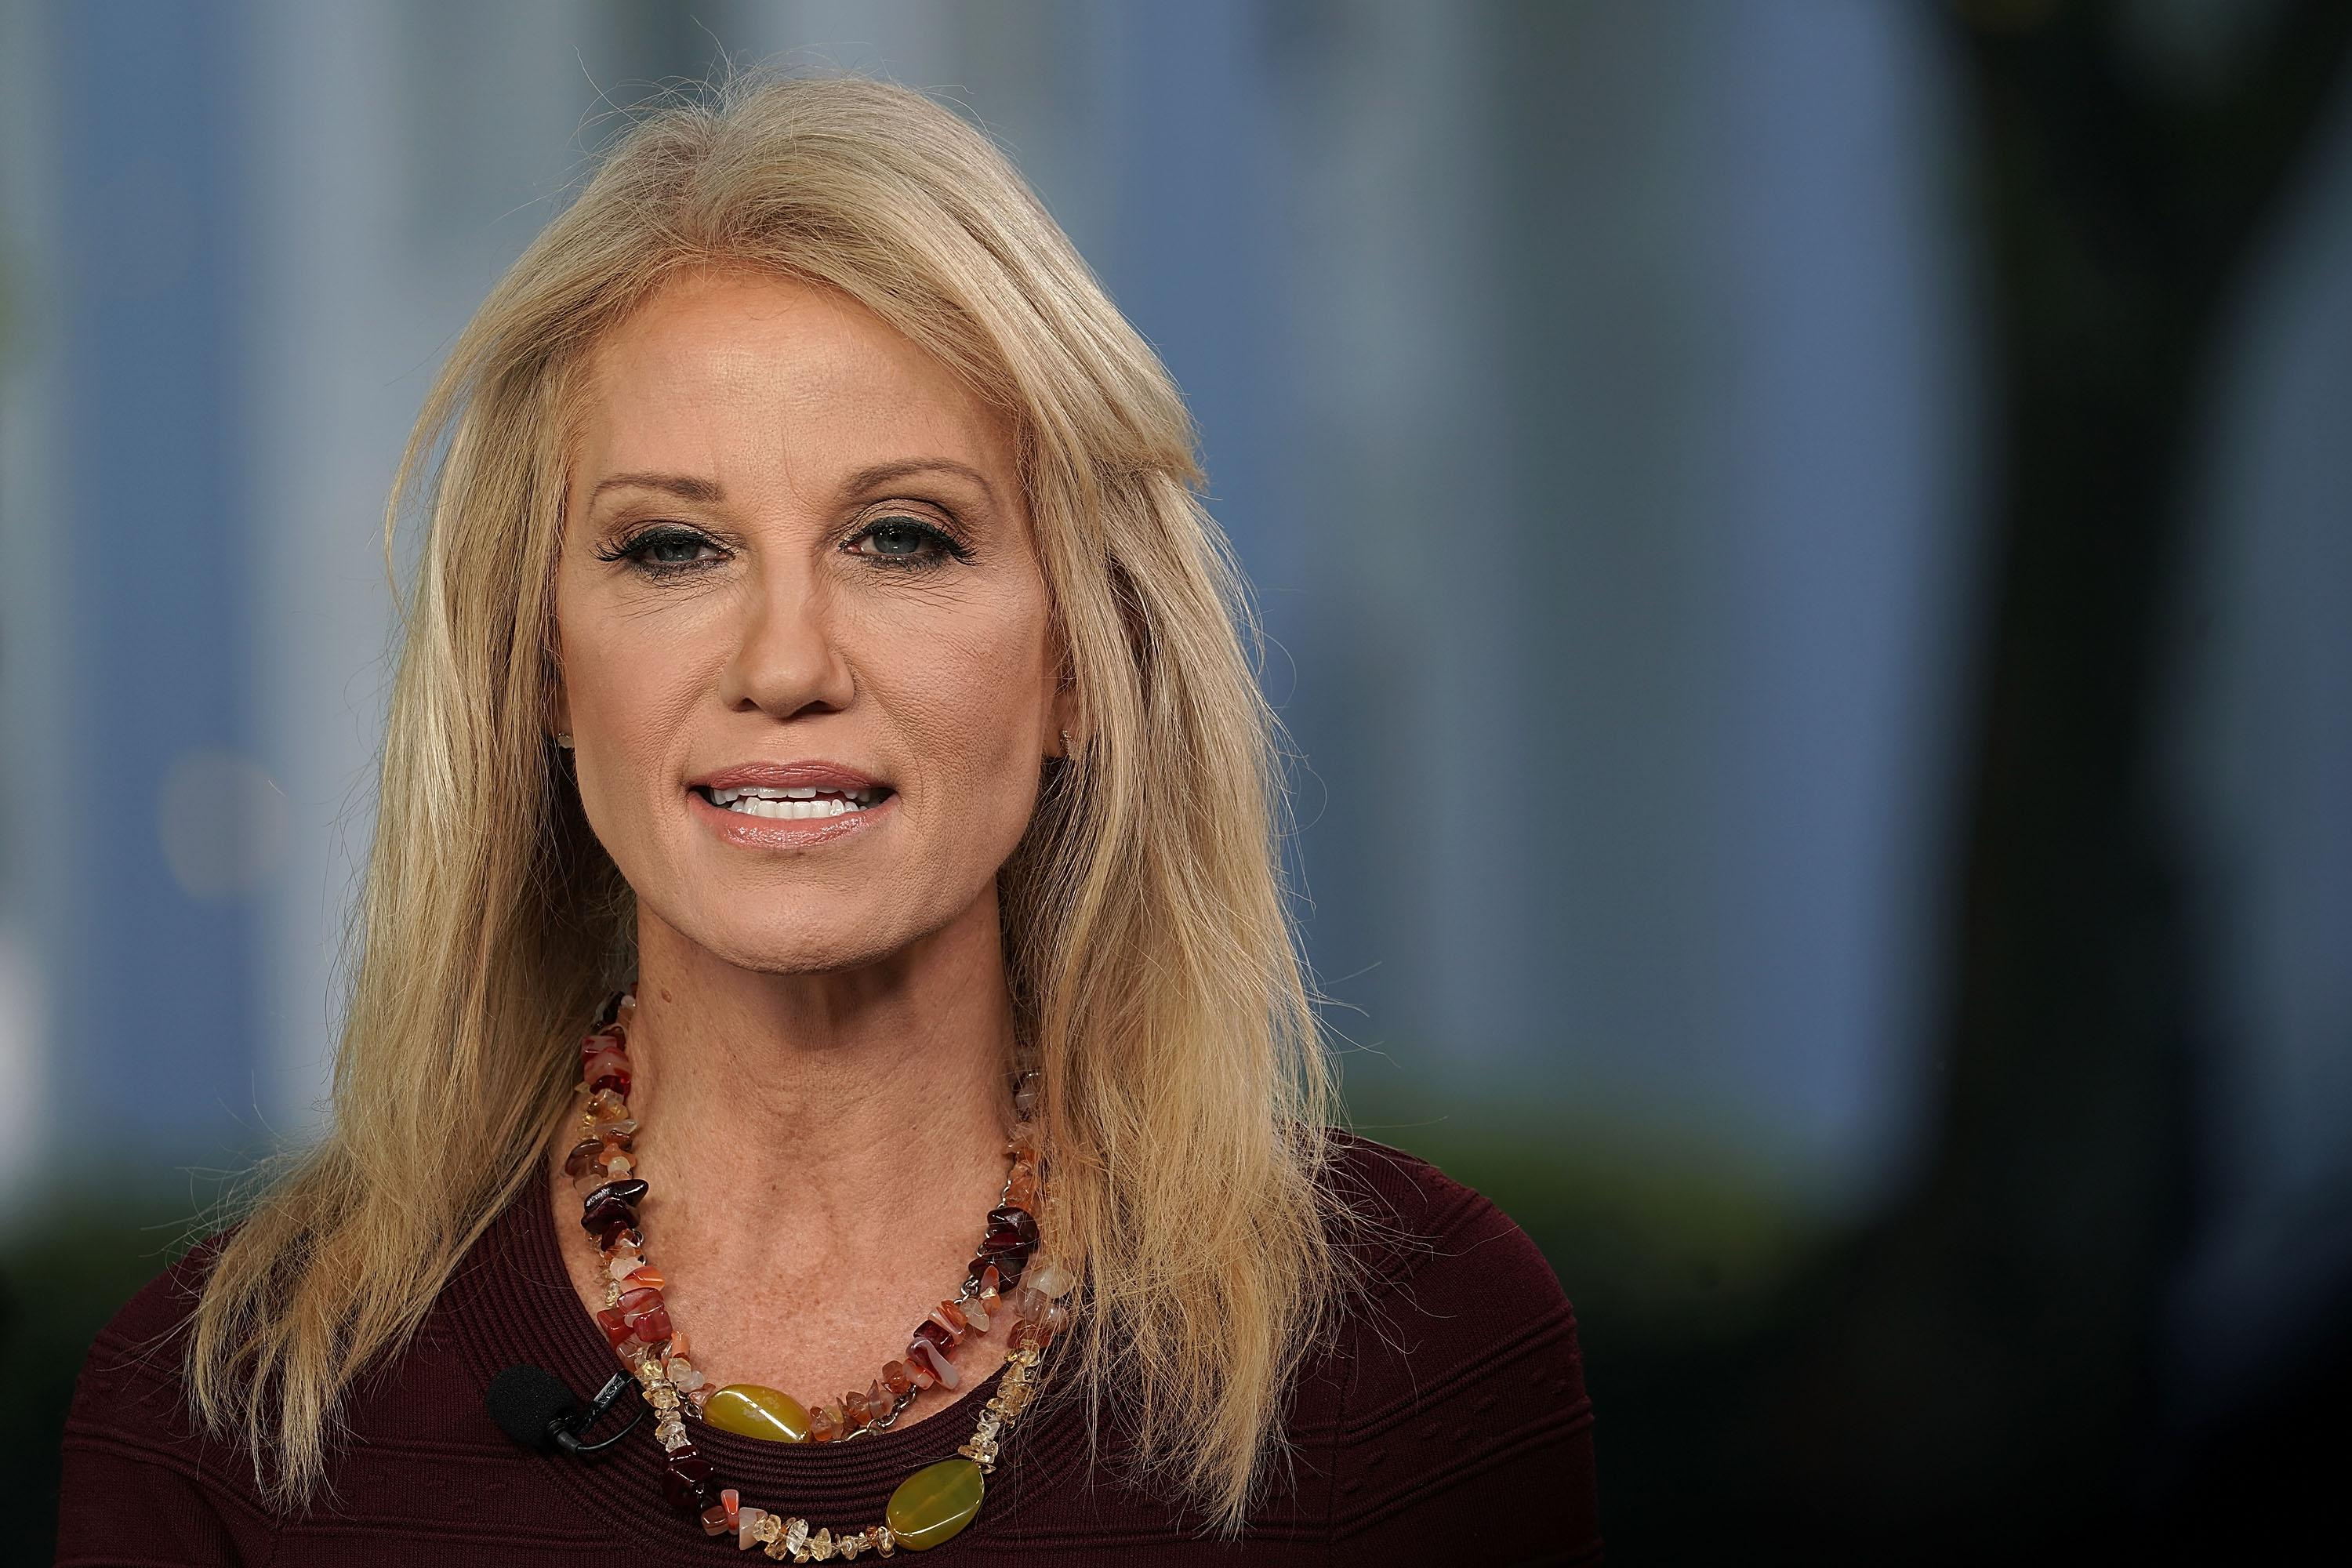 A photo of Kellyanne Conway wearing a microphone, in what appears to be a television appearance.